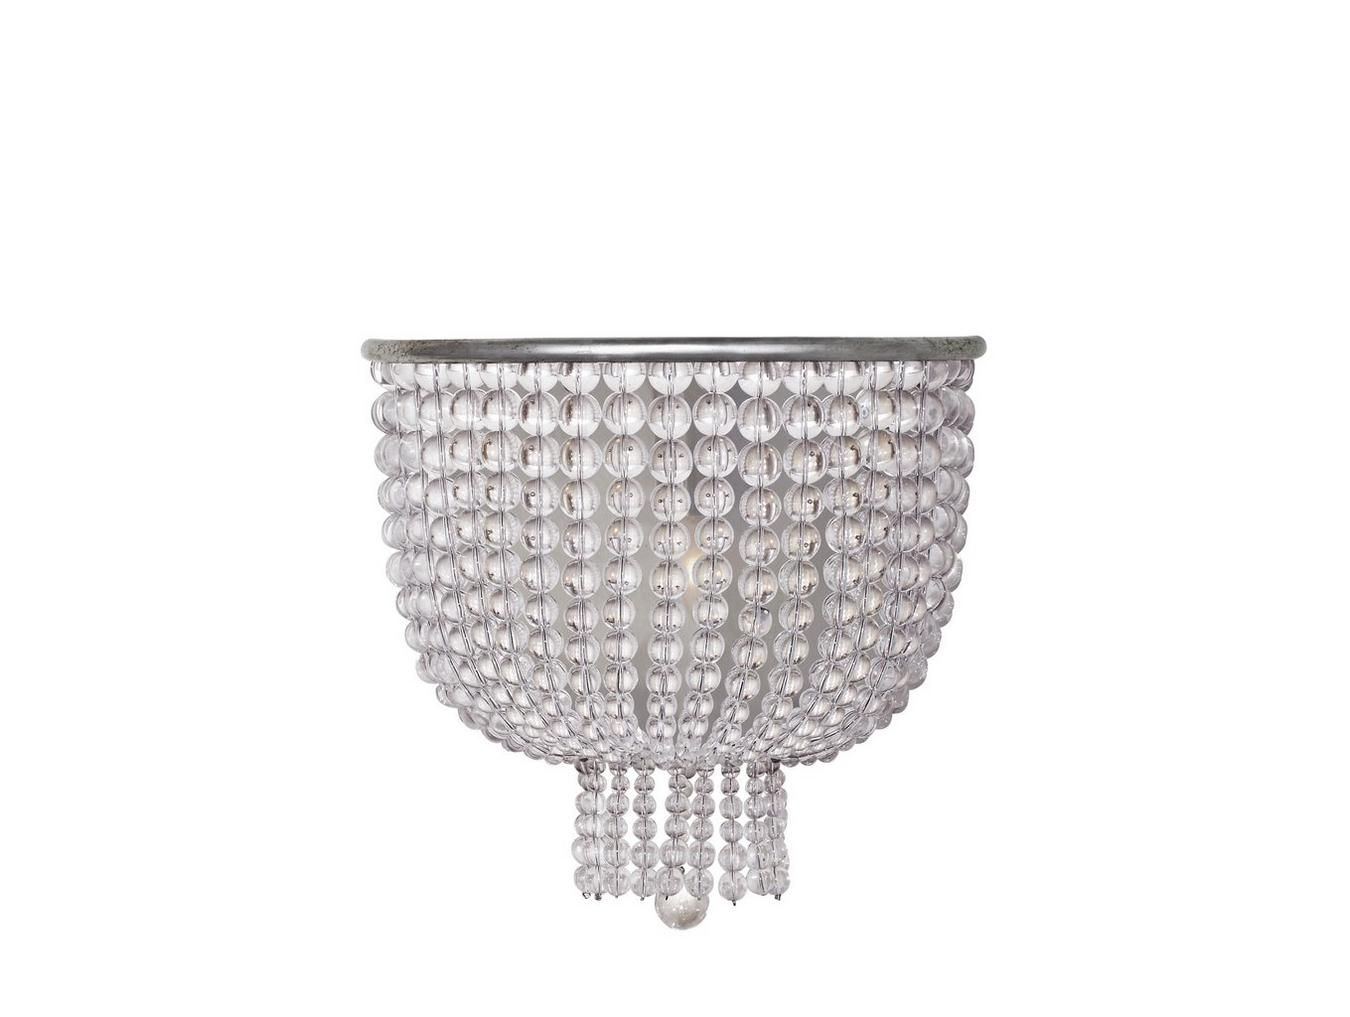 Jacqueline Clear Sconce 24012628040_12_1 zoom image